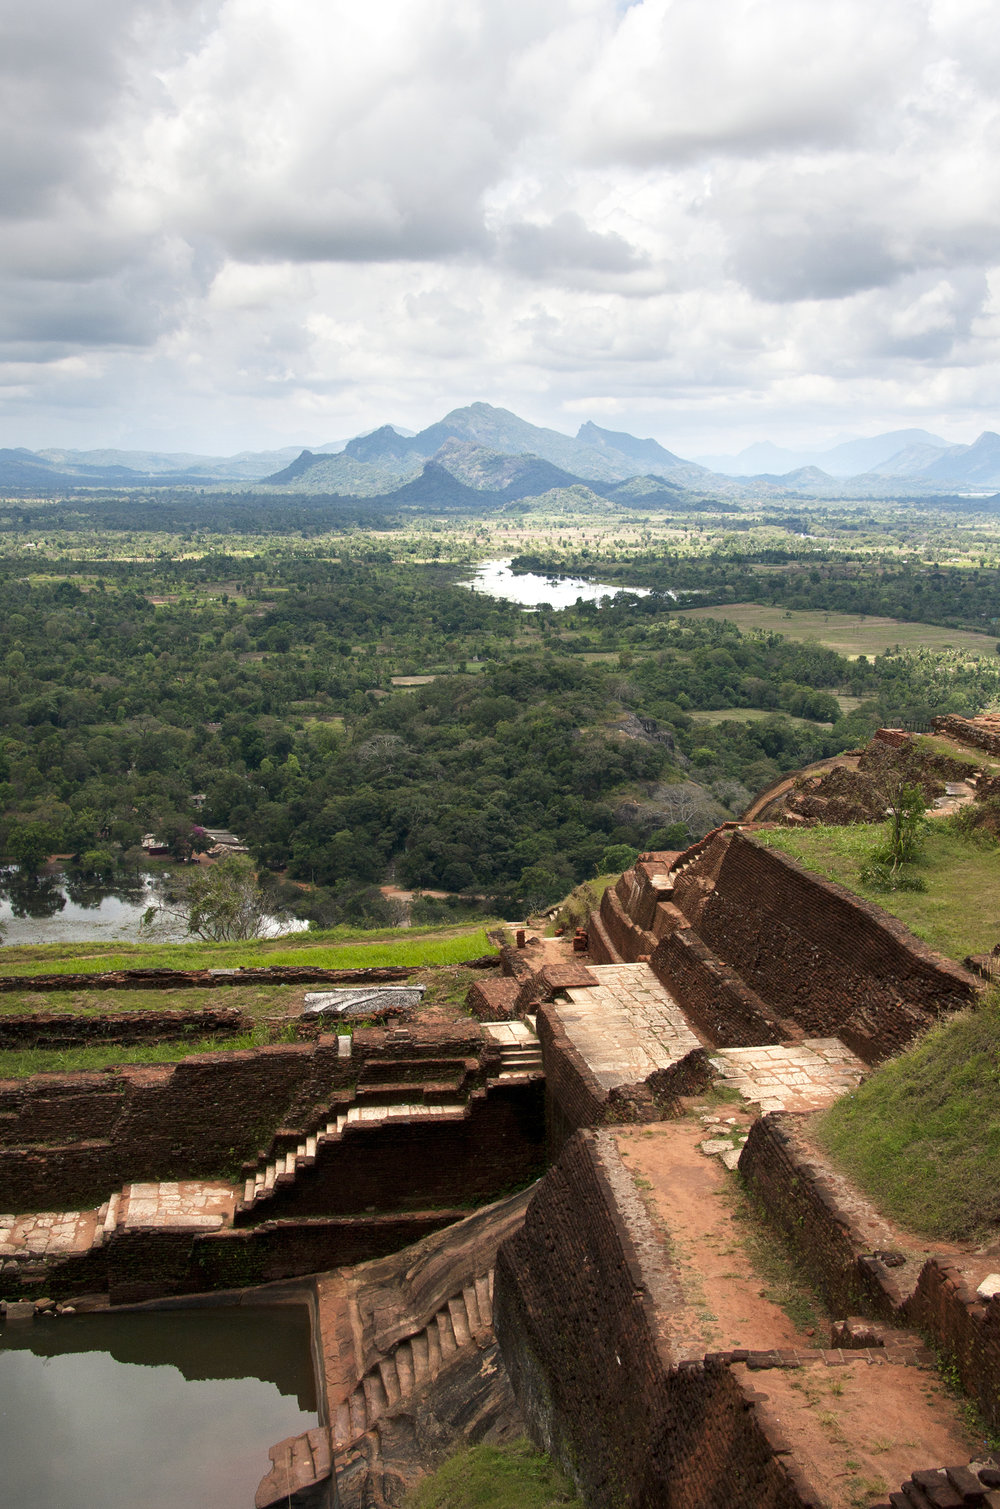 invite-to-paradise-sri-lanka-holiday-honeymoon-sigiriya-rock-fortress-view-from-the-top.jpg